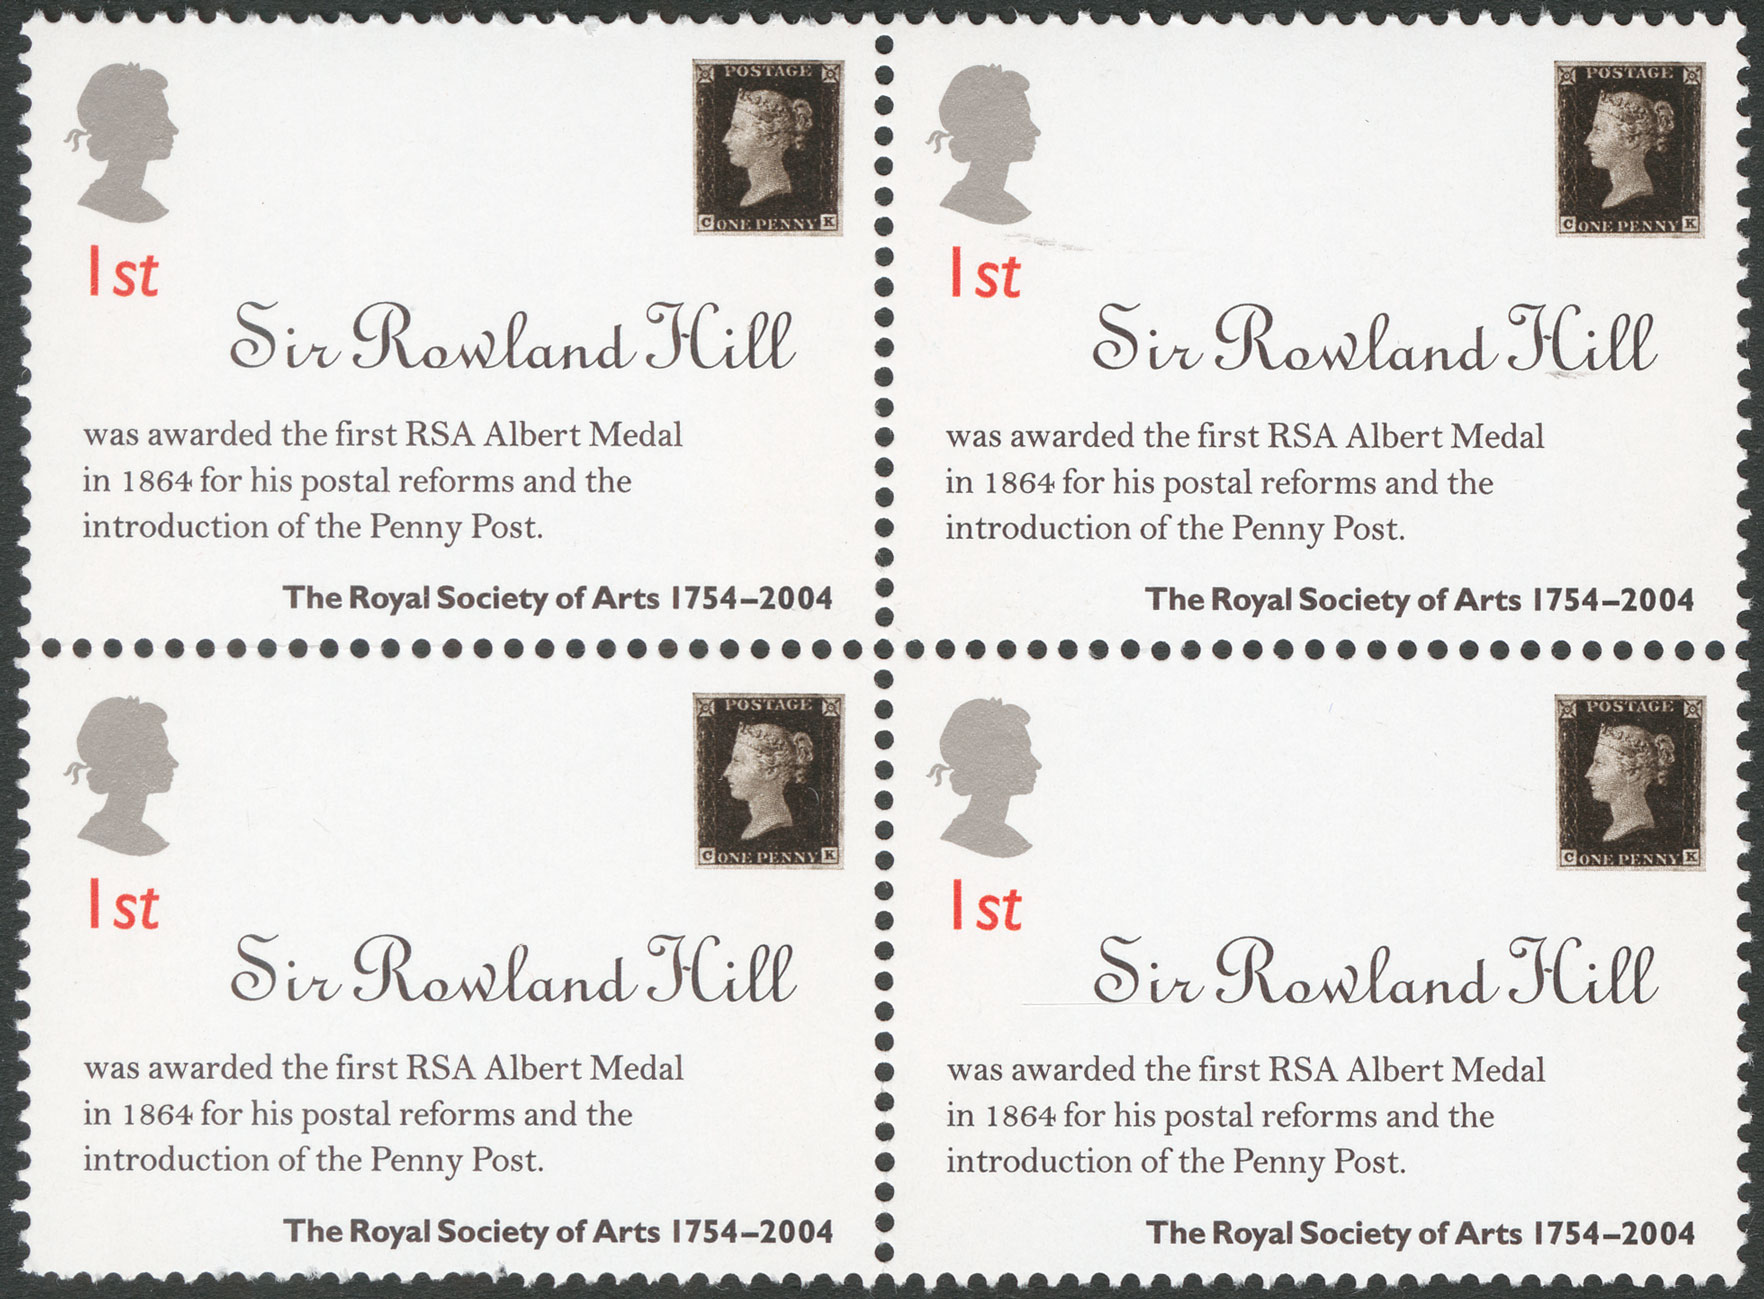 Four attached stamps featuring a Penny Black and information about Sir Rowland Hill receiving the RSA Albert medal.